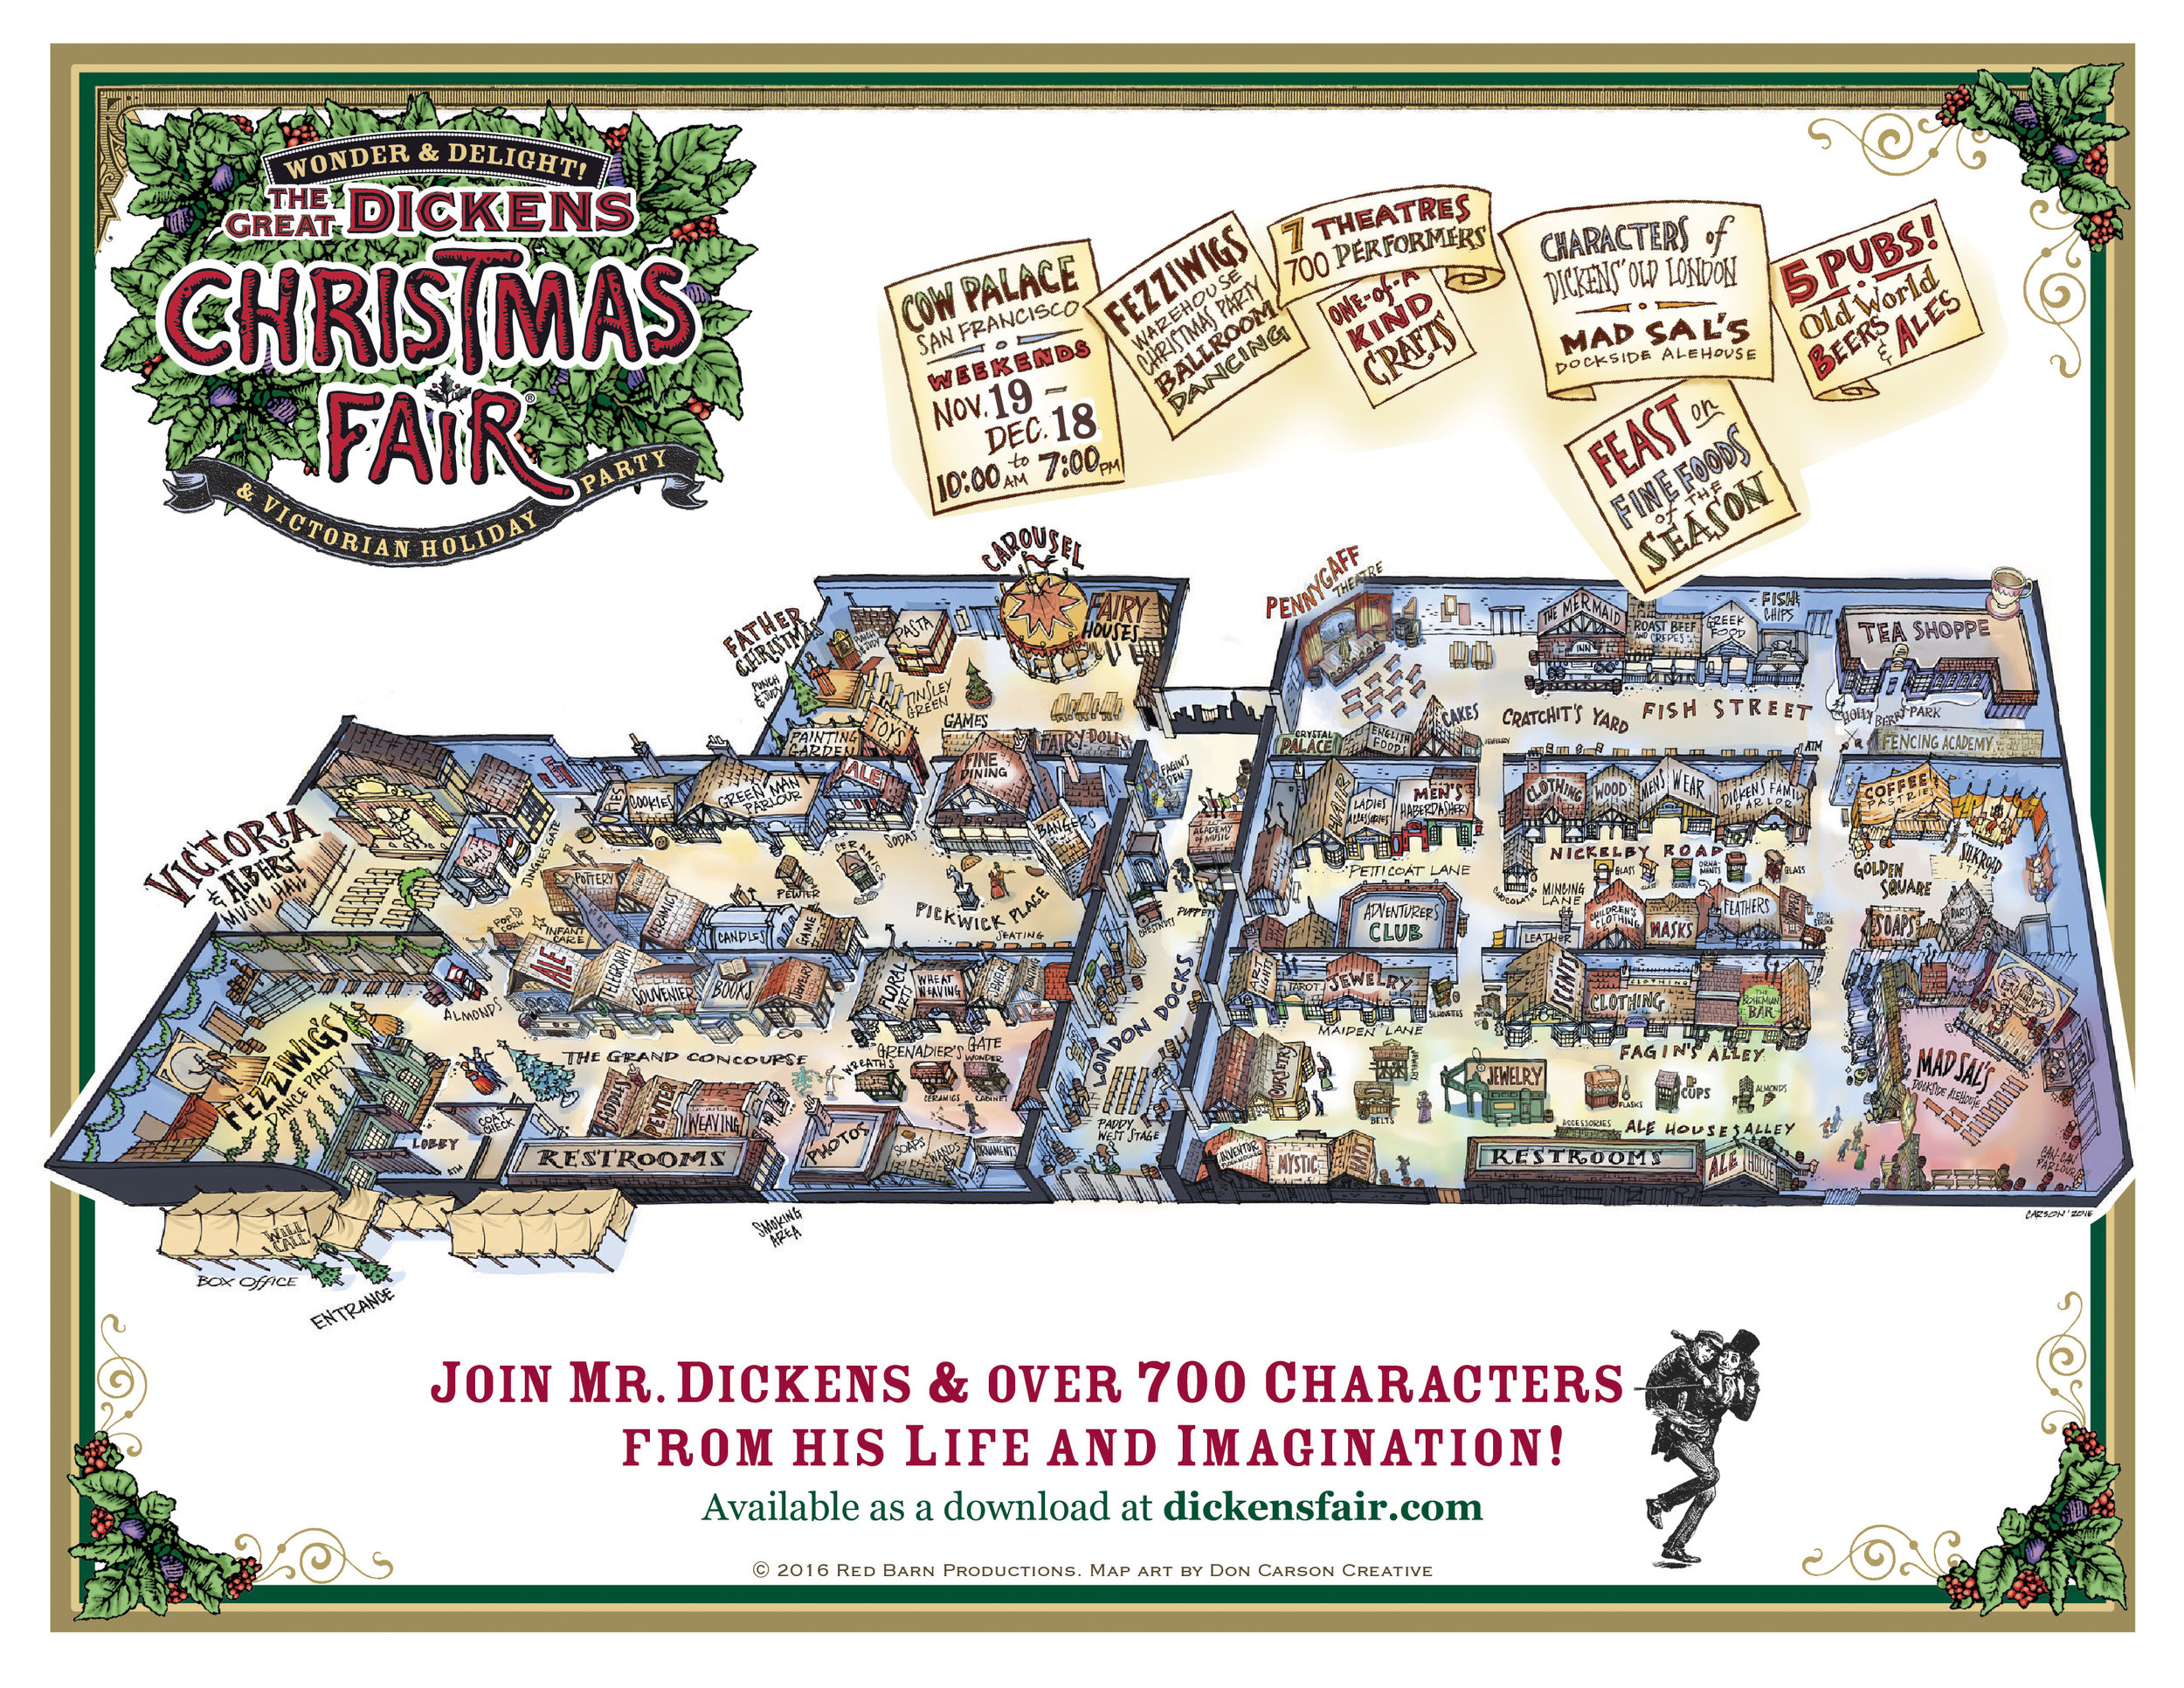 Map Of The Great Dickens Christmas Fair